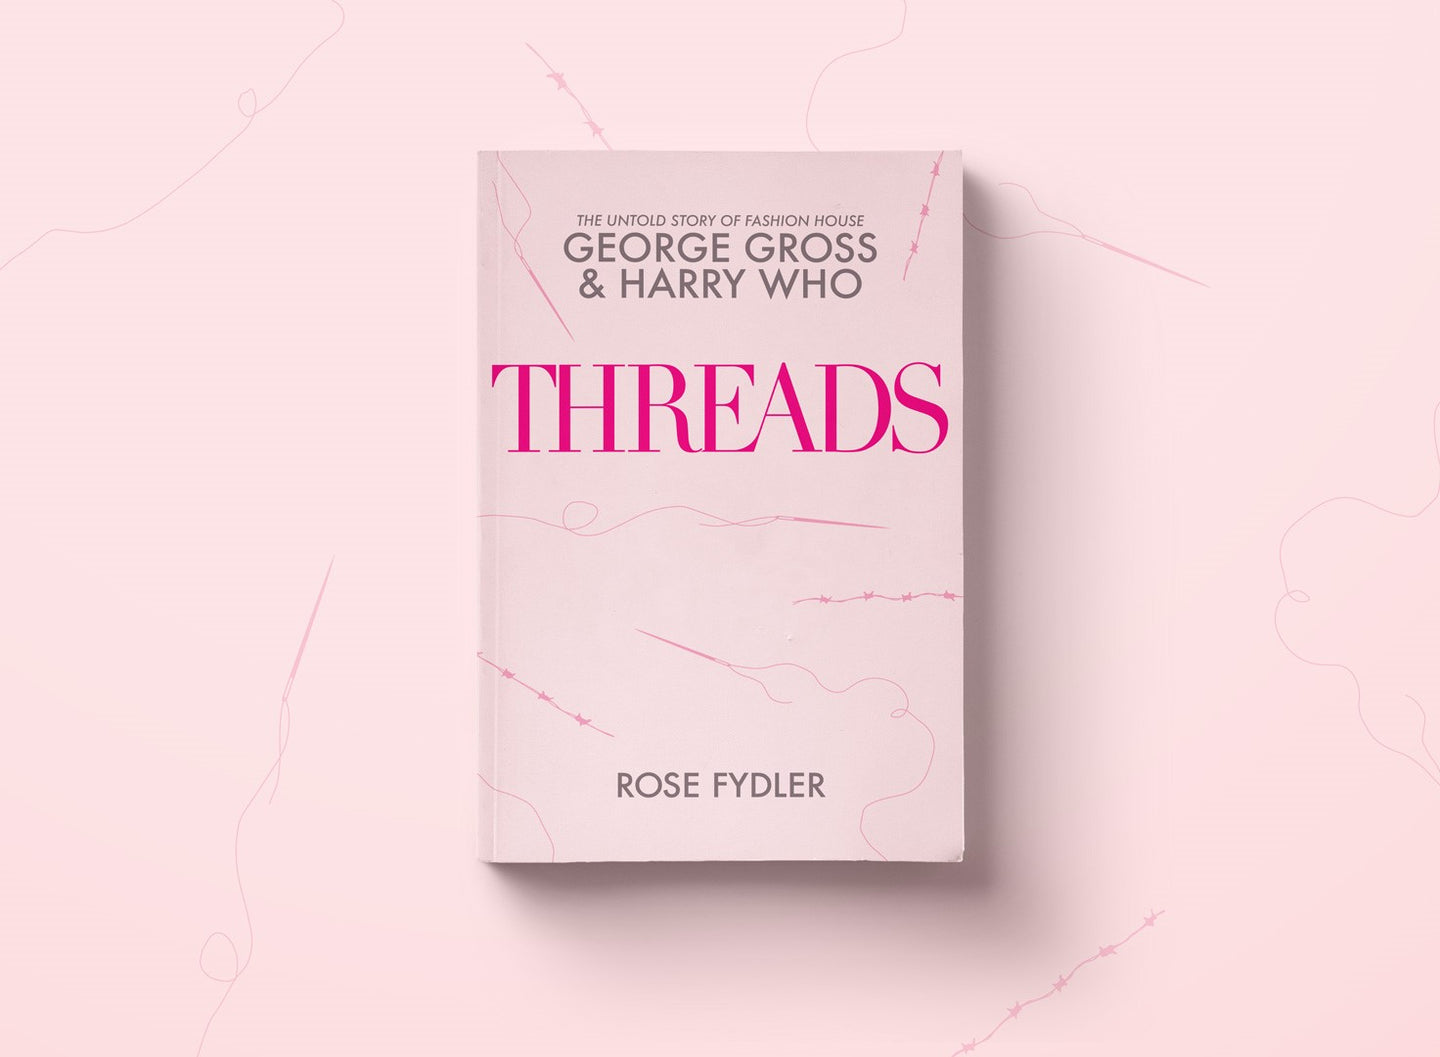 threads - George Gross Book - Harry Who Book